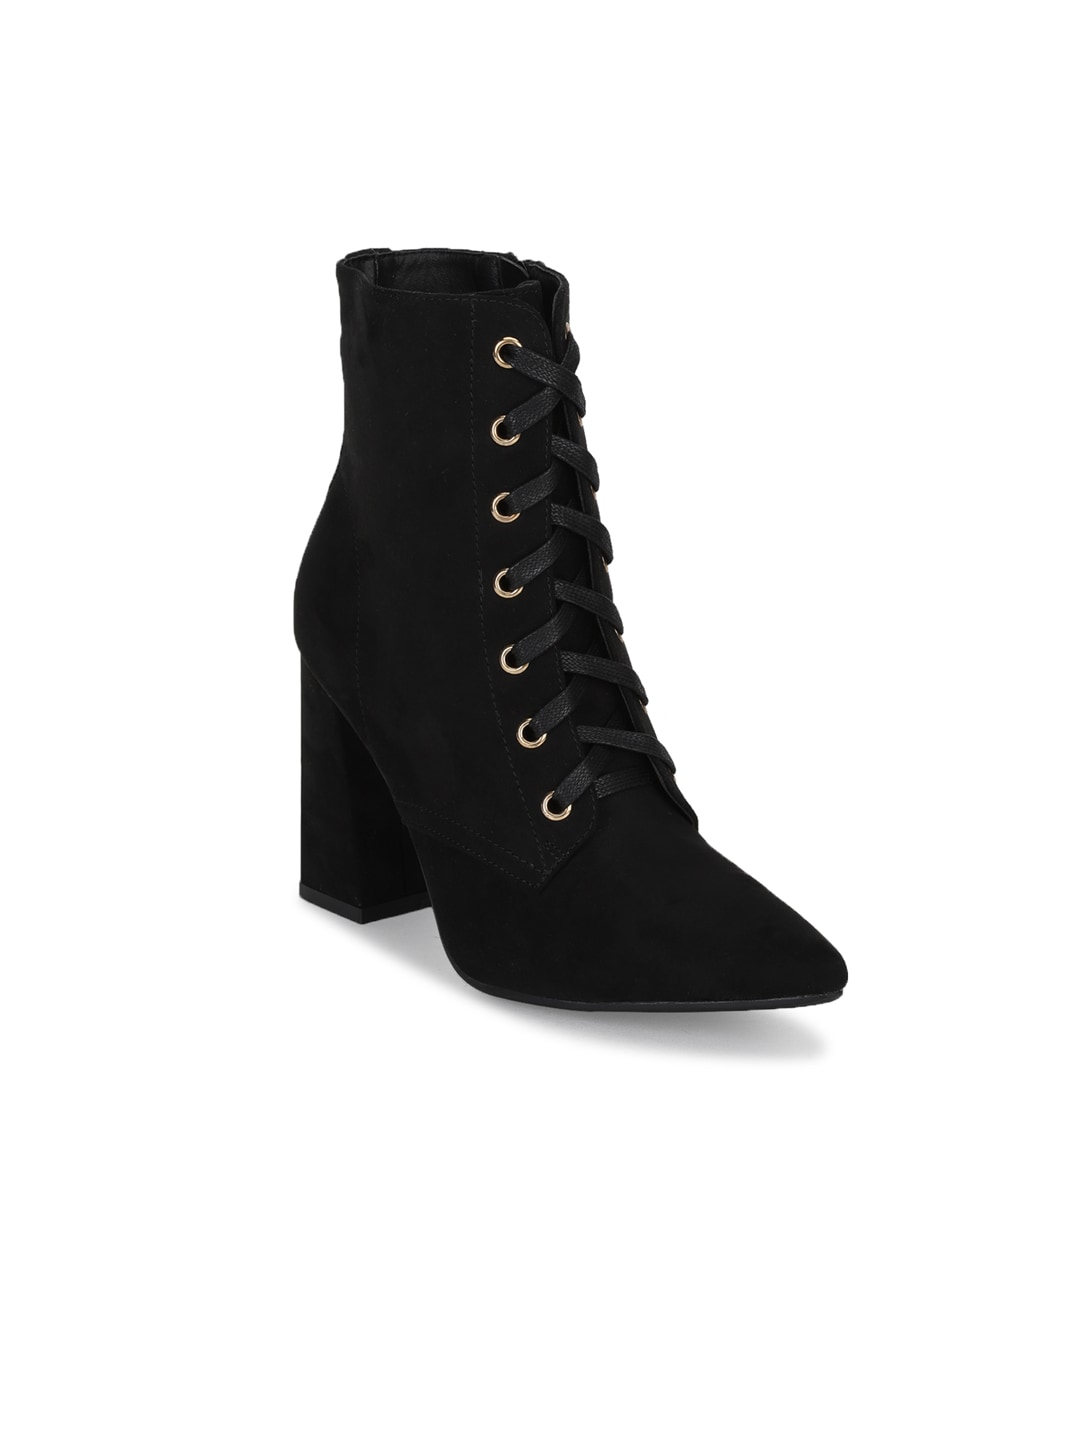 04475897d0d5 Womens Boots - Buy Boots for Women Online in India